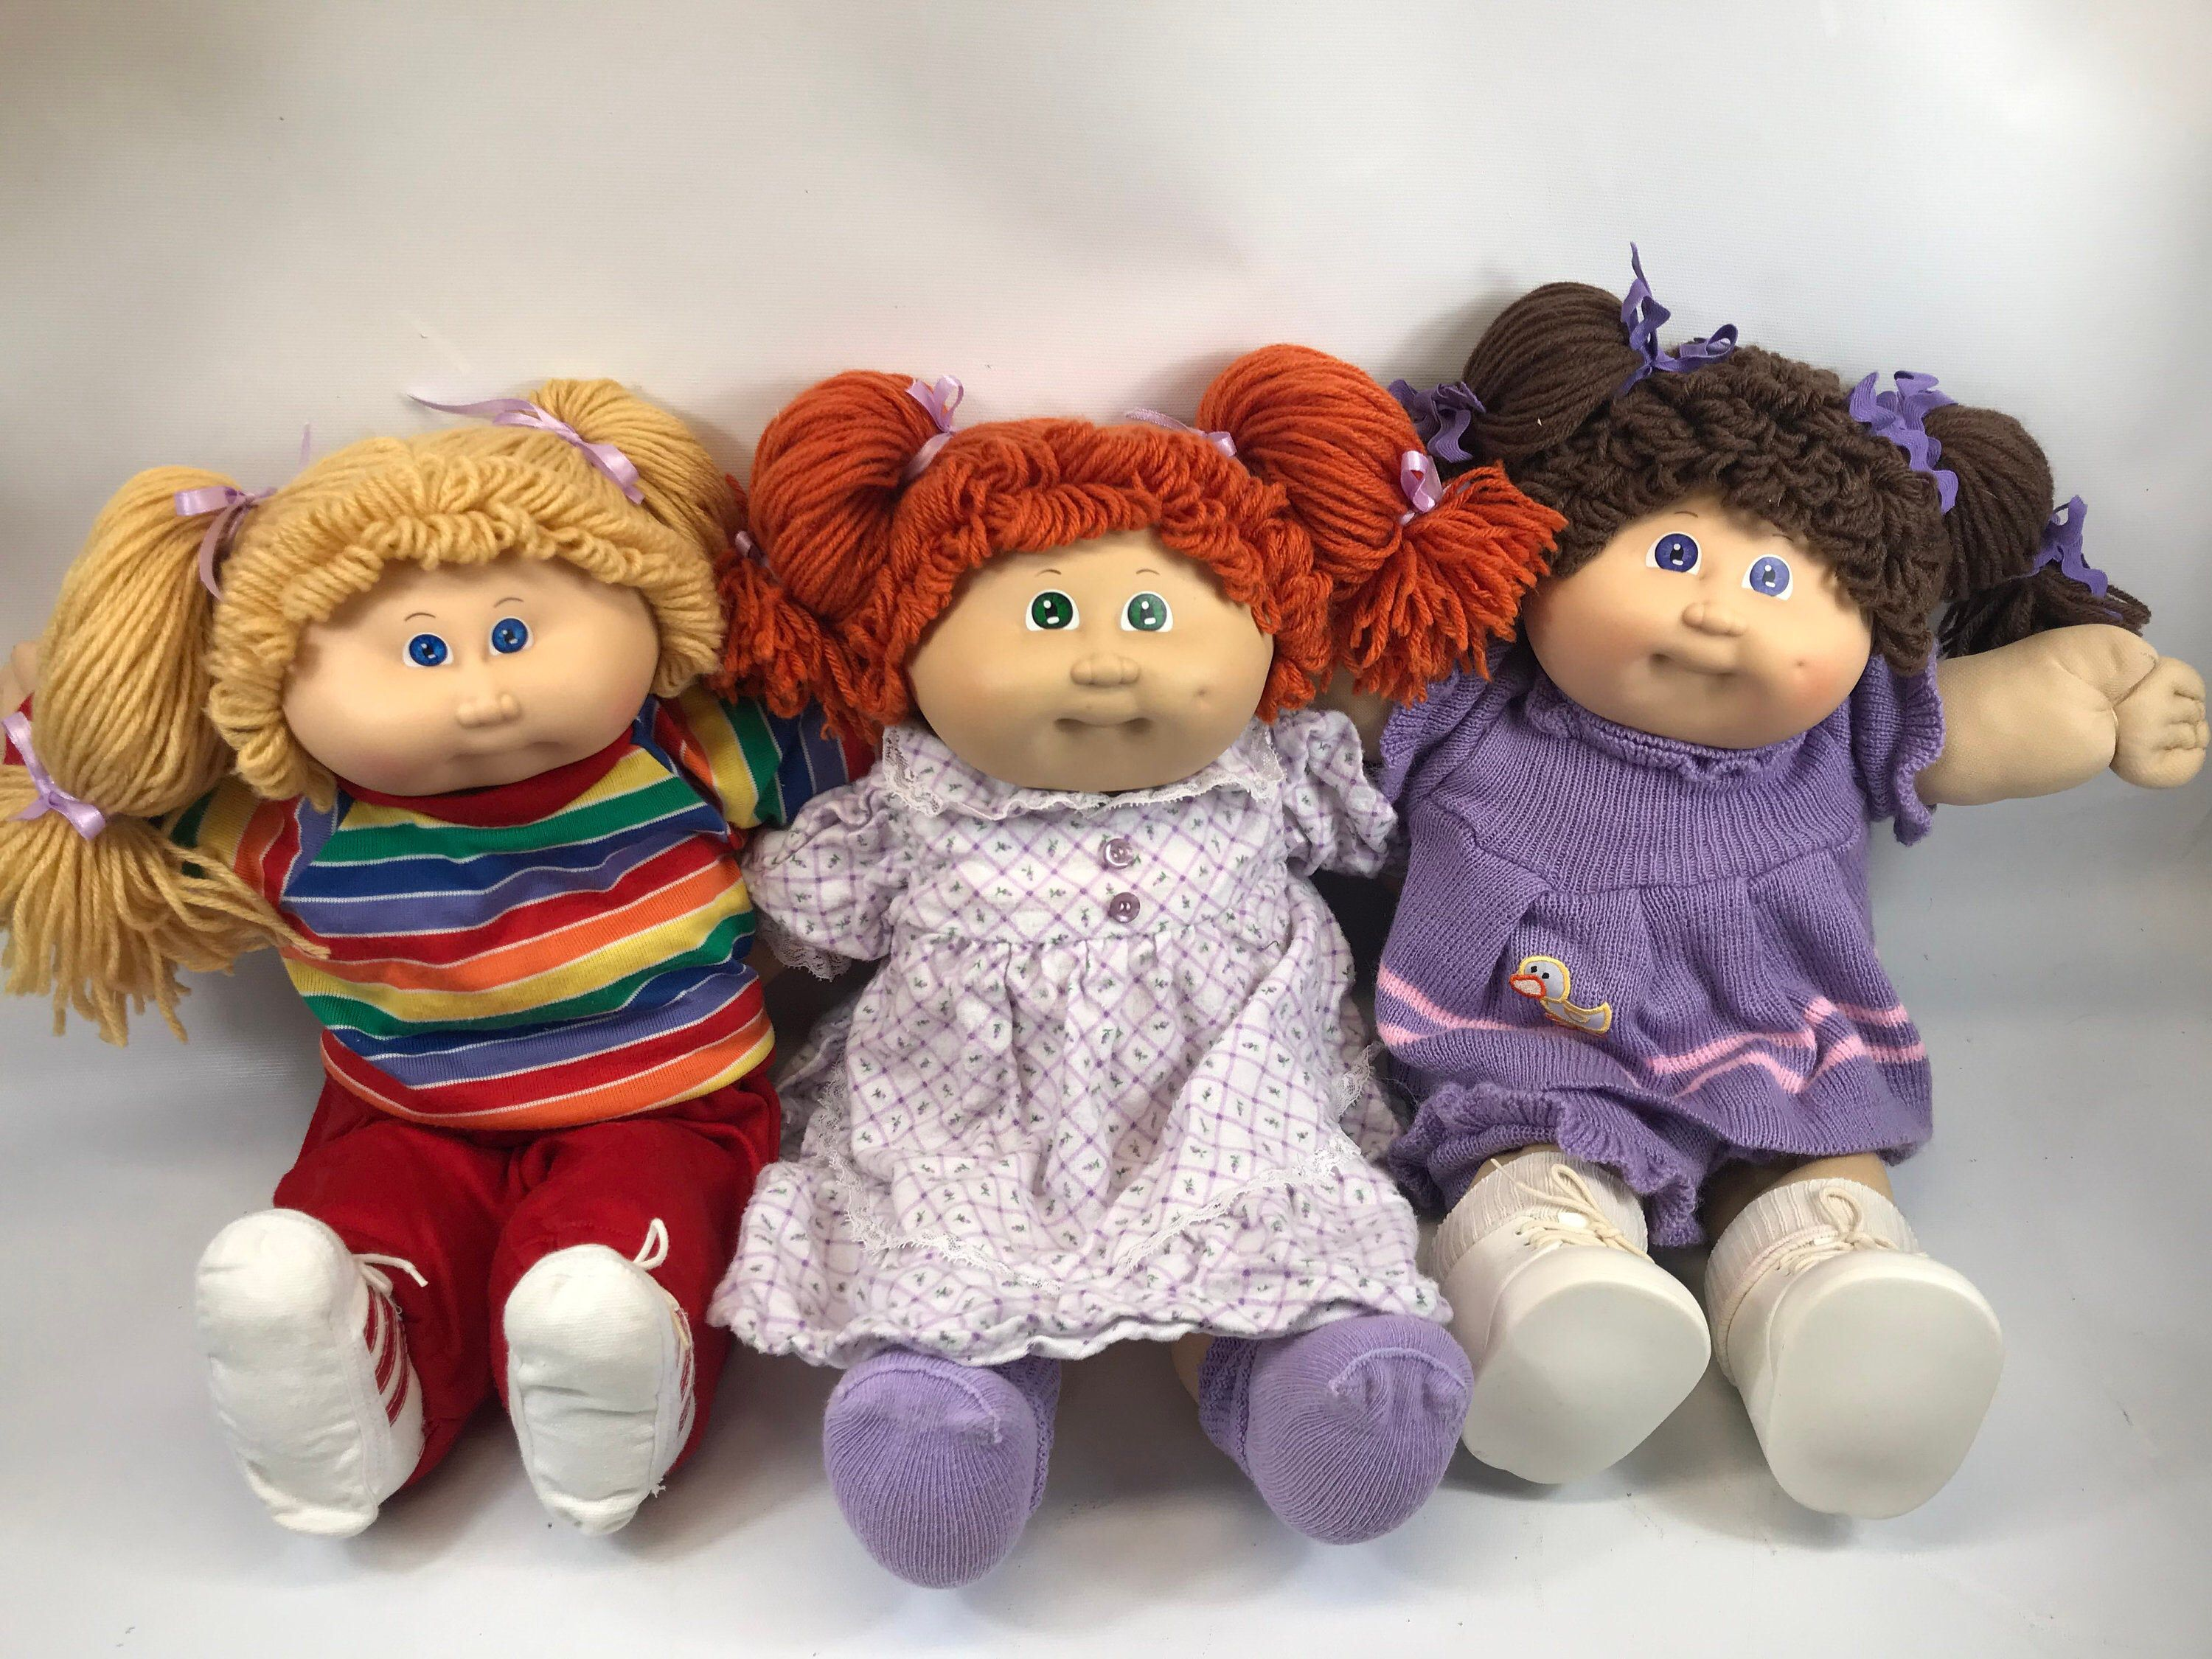 94 Best Cabbage Patch Dolls images in 2020 | Cabbage patch dolls, Cabbage  patch, Cabbage patch kids